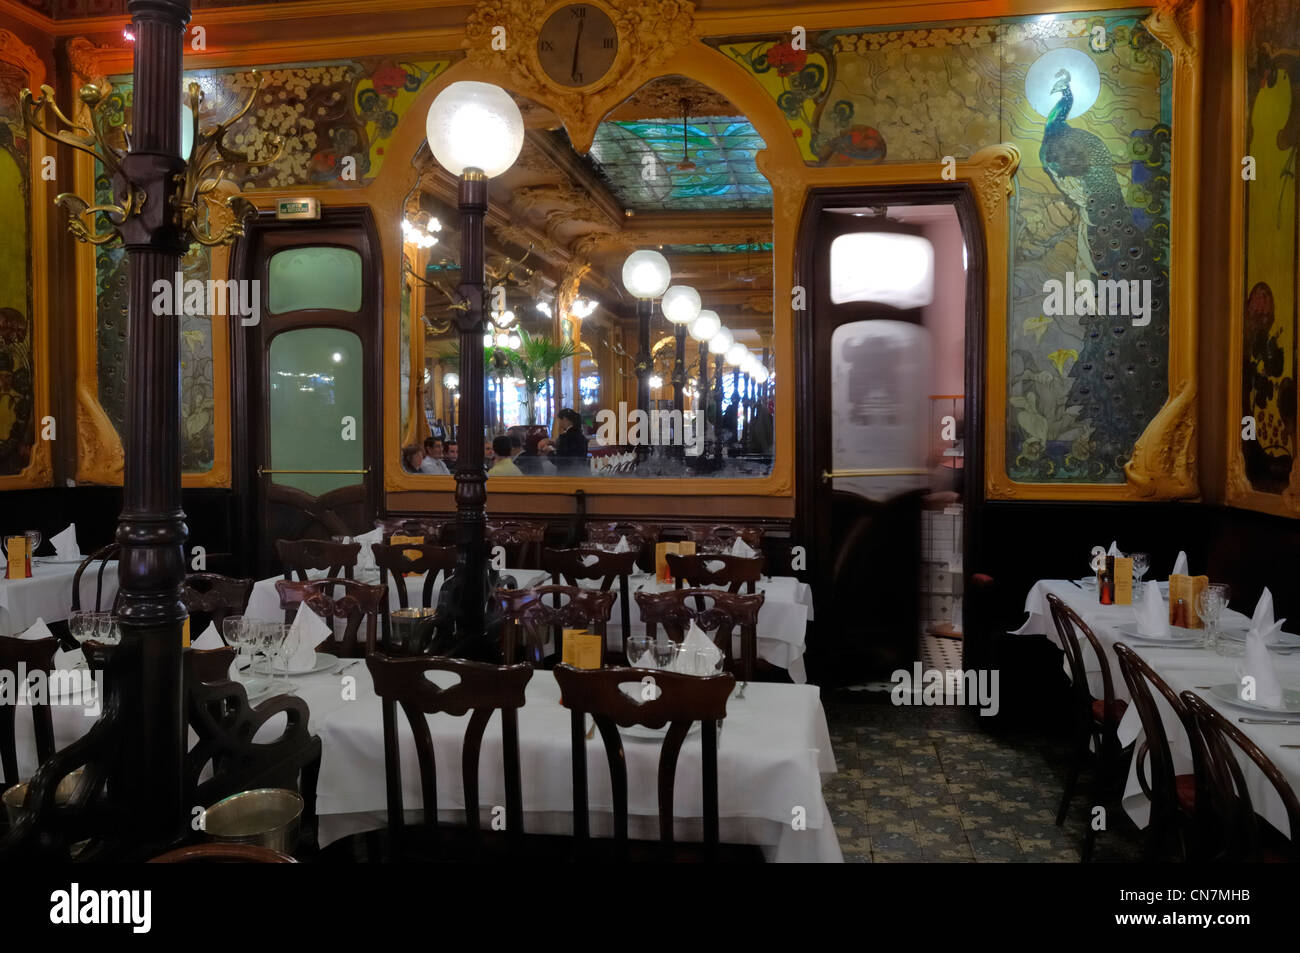 france paris art deco restaurant chez julien stock photo royalty free image 47498343 alamy. Black Bedroom Furniture Sets. Home Design Ideas